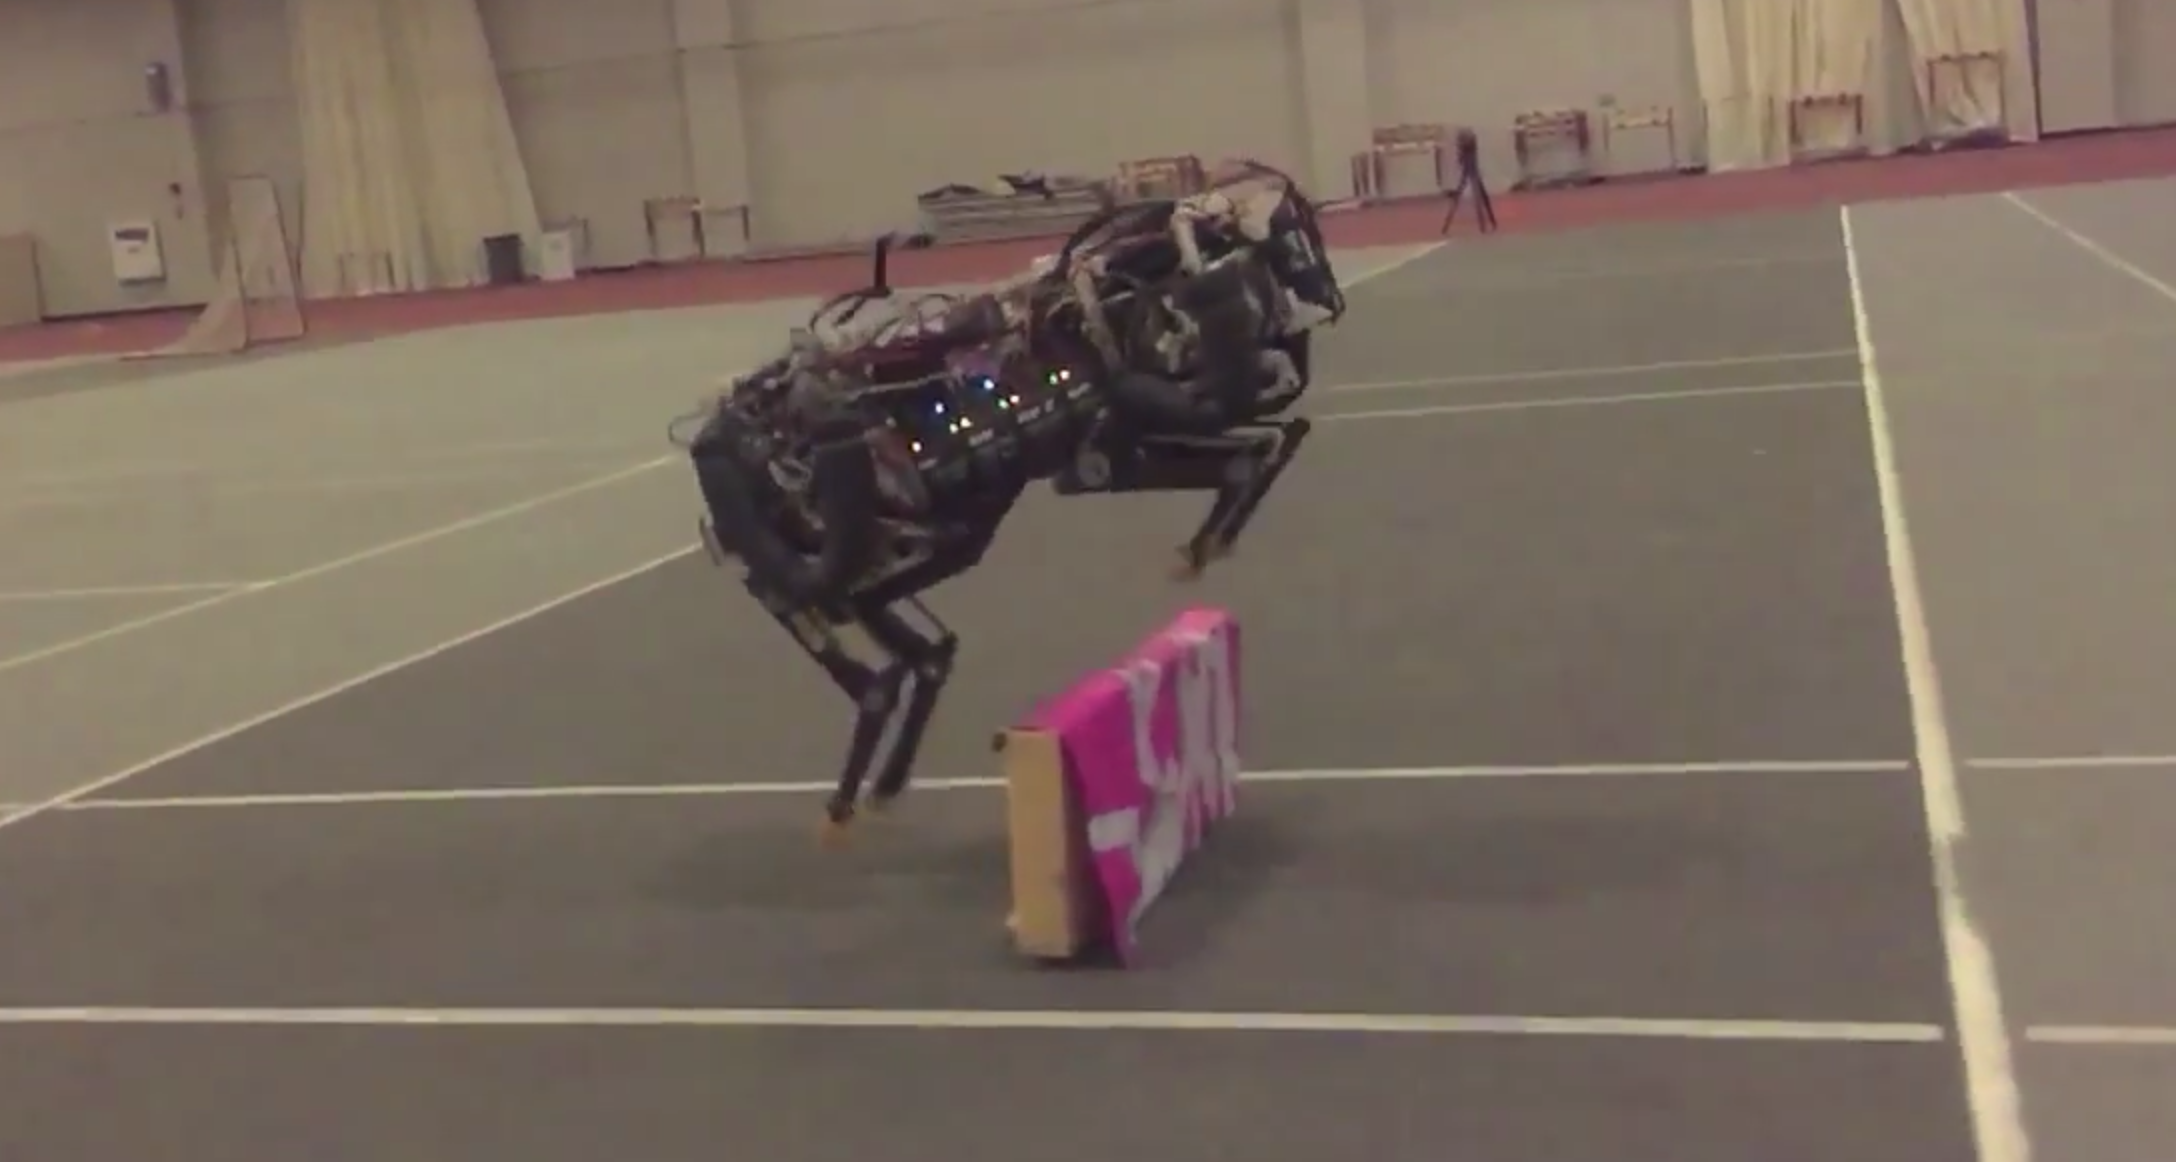 This machine can run and jump over obstacles simultaneously.